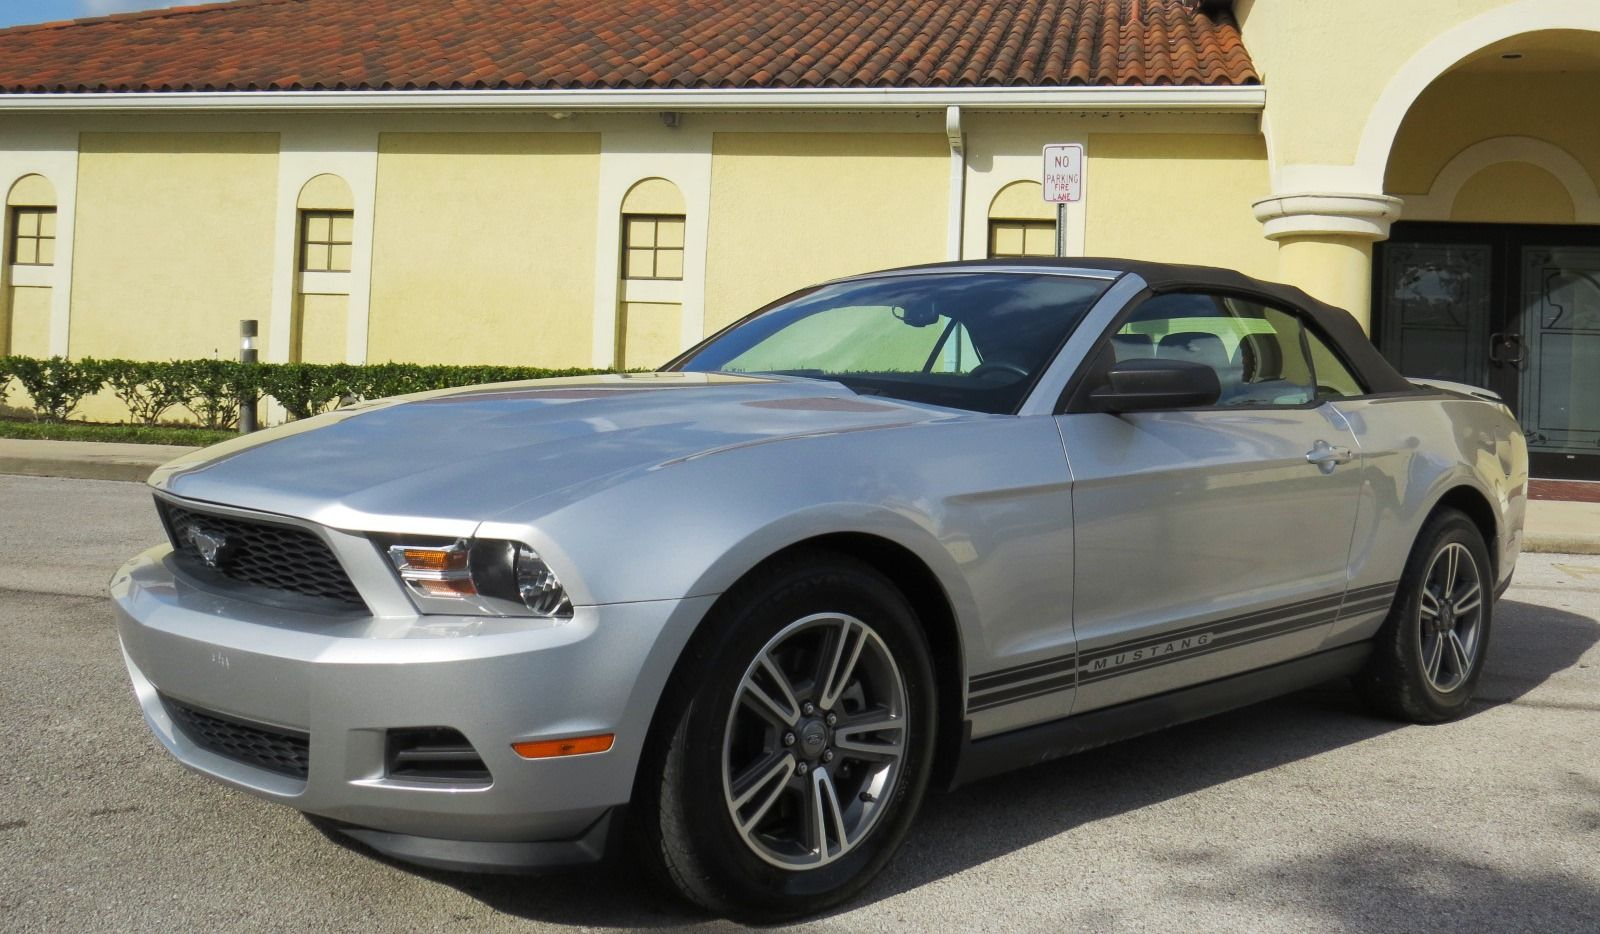 2011 ford mustang v6 convertible like new leather 63k miles http